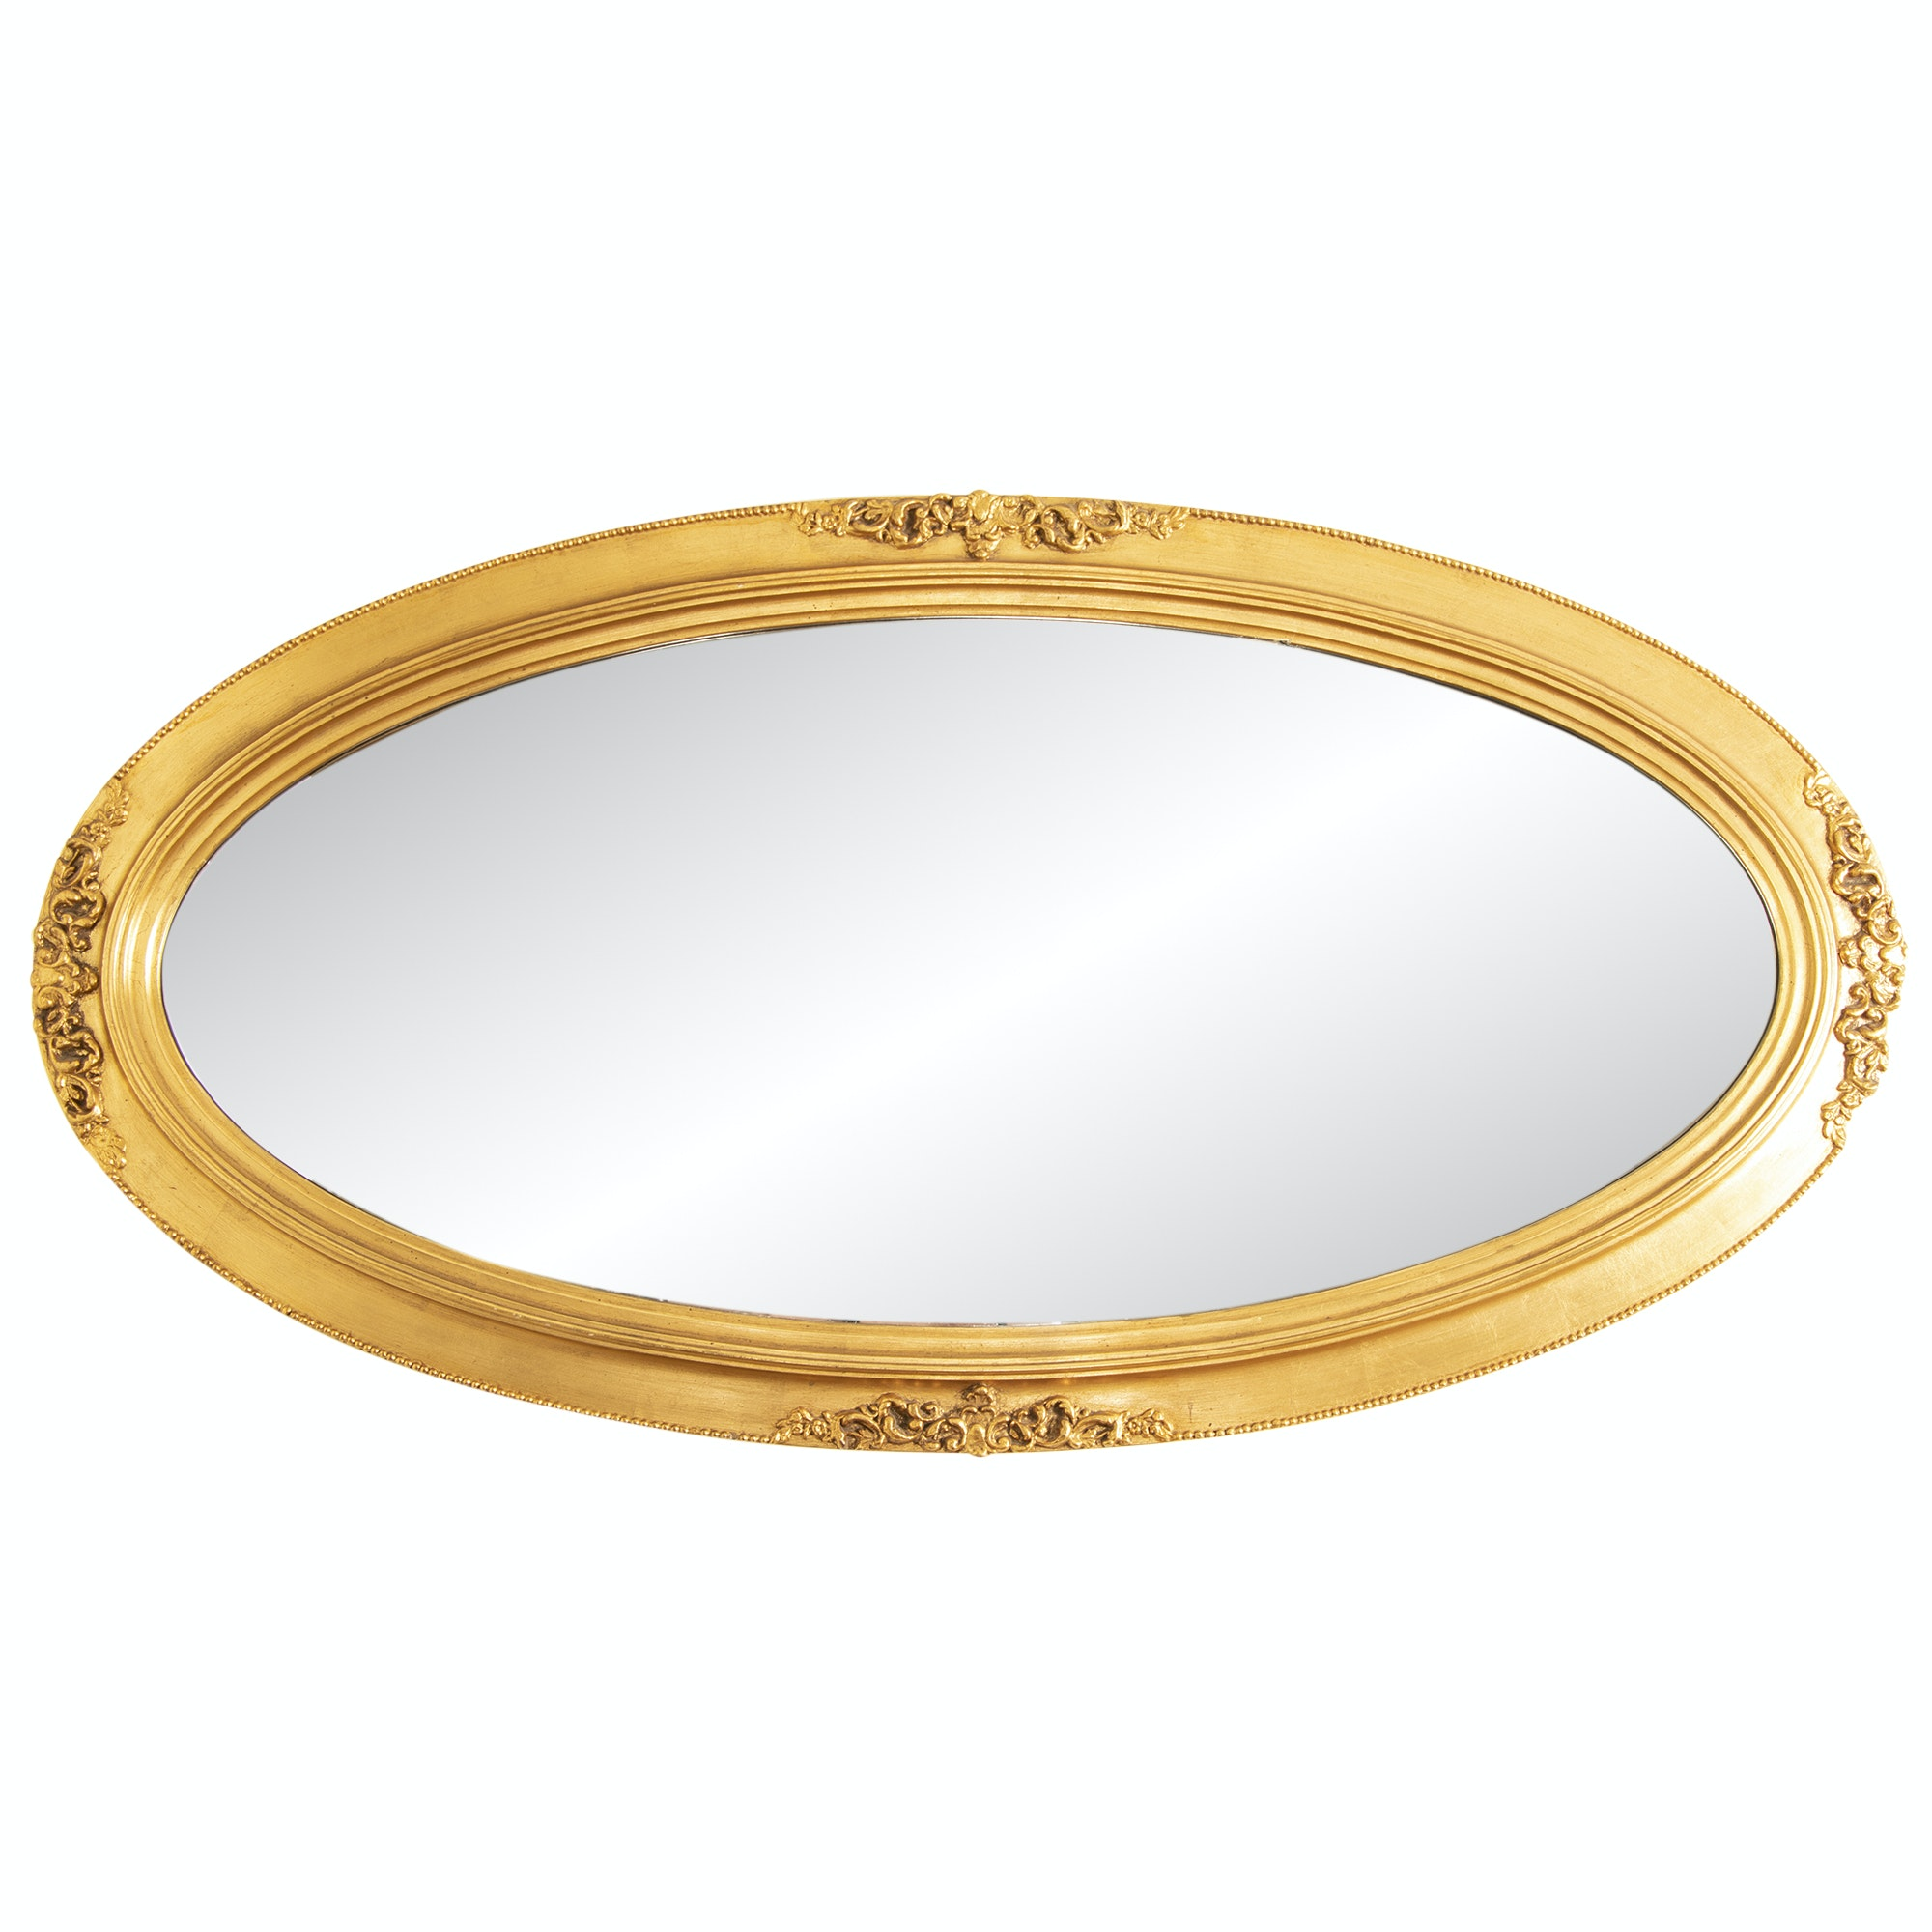 Oval Gold-Toned Wooden Wall Mirror with Beaded Trim, Mid-Century